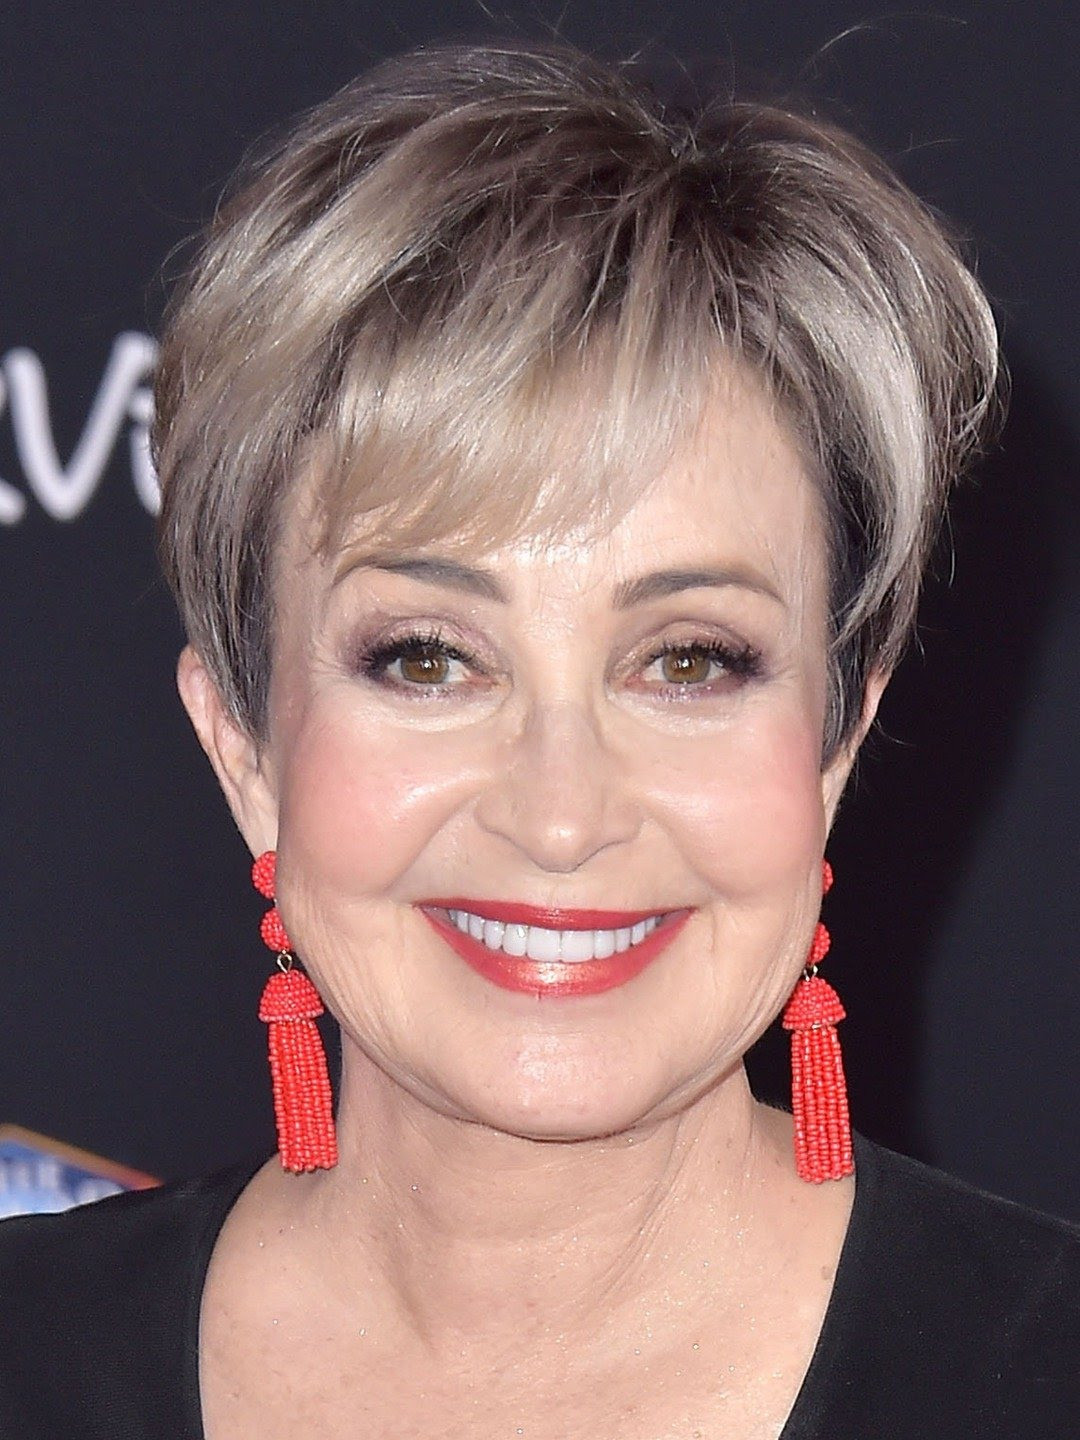 Annie Potts | Disney Wiki | FANDOM powered by WikiaAnnie Potts 2013